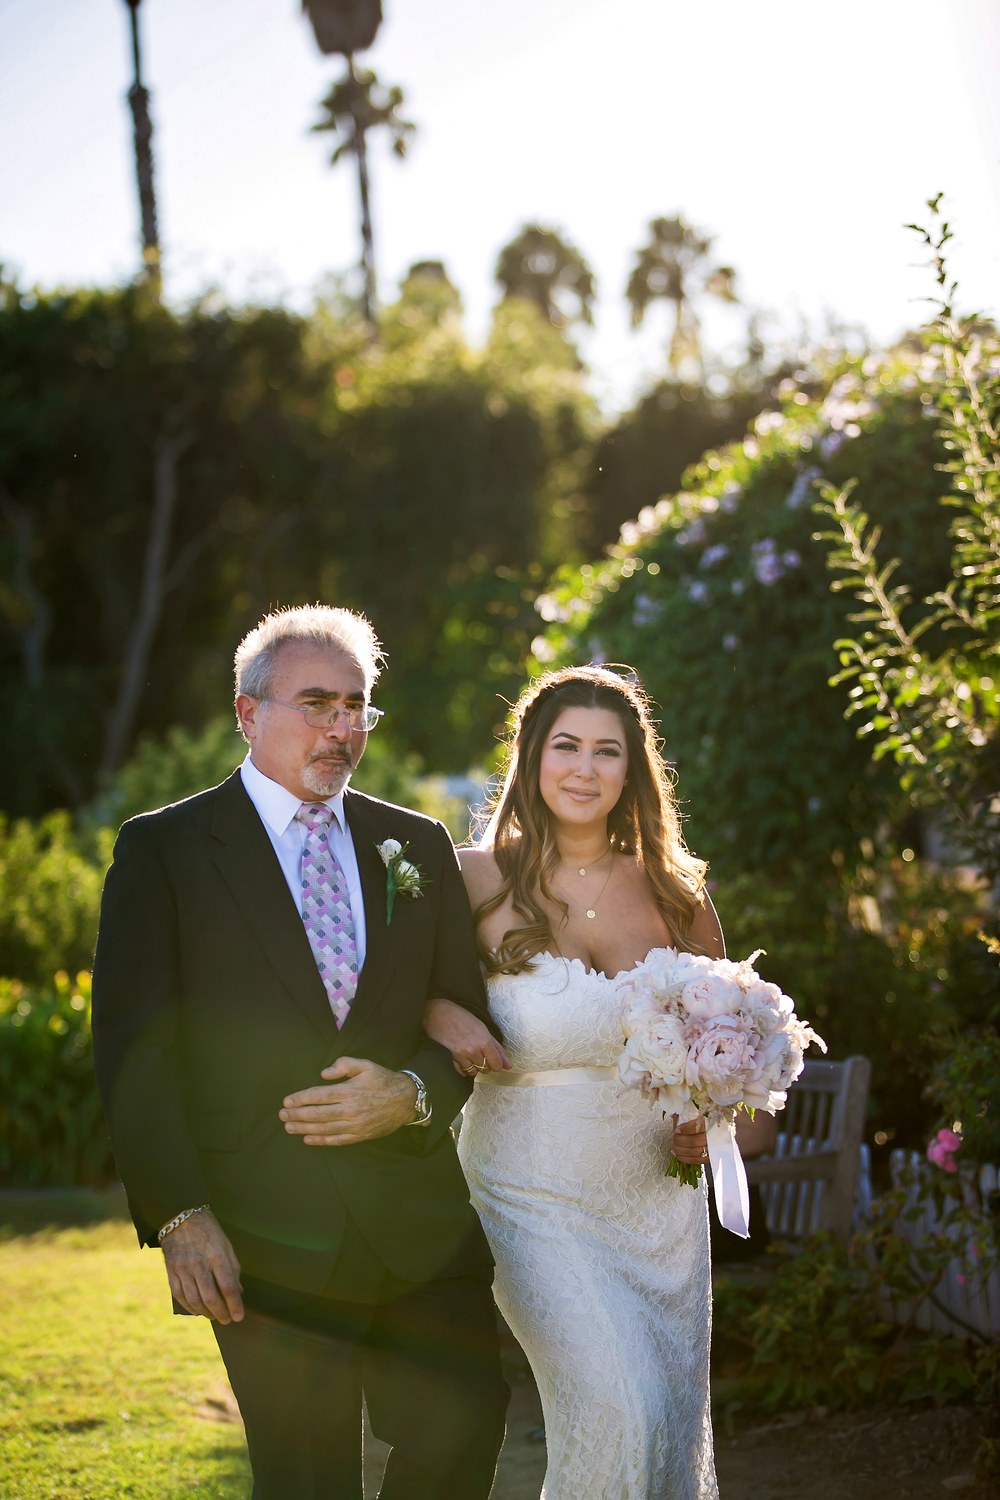 los angeles wedding photographer_ south coast botanic garden_wedding_05.jpg